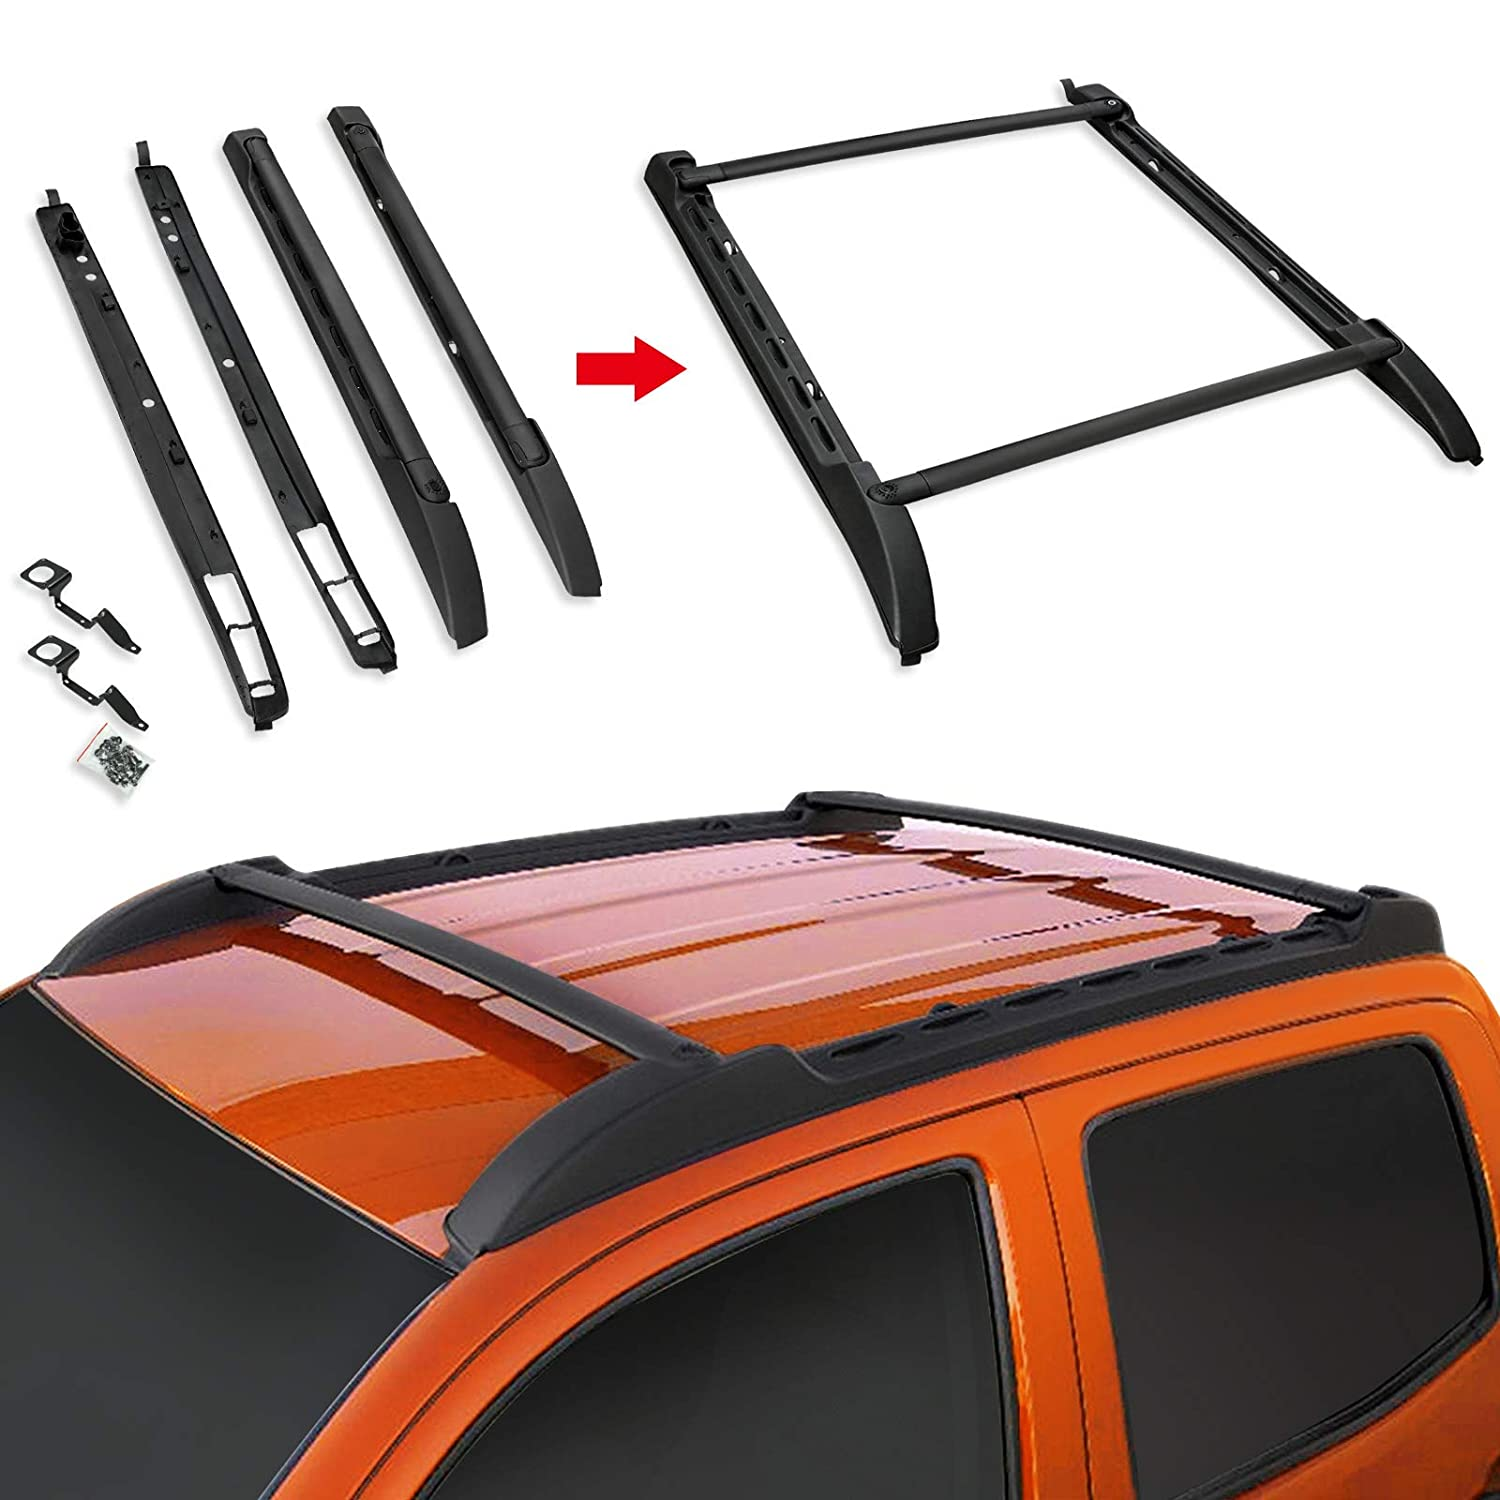 VZ4X4 Black Roof Rack Rail for 2005-2018 Toyota Tacoma Double Cab Style Roof Rack Set